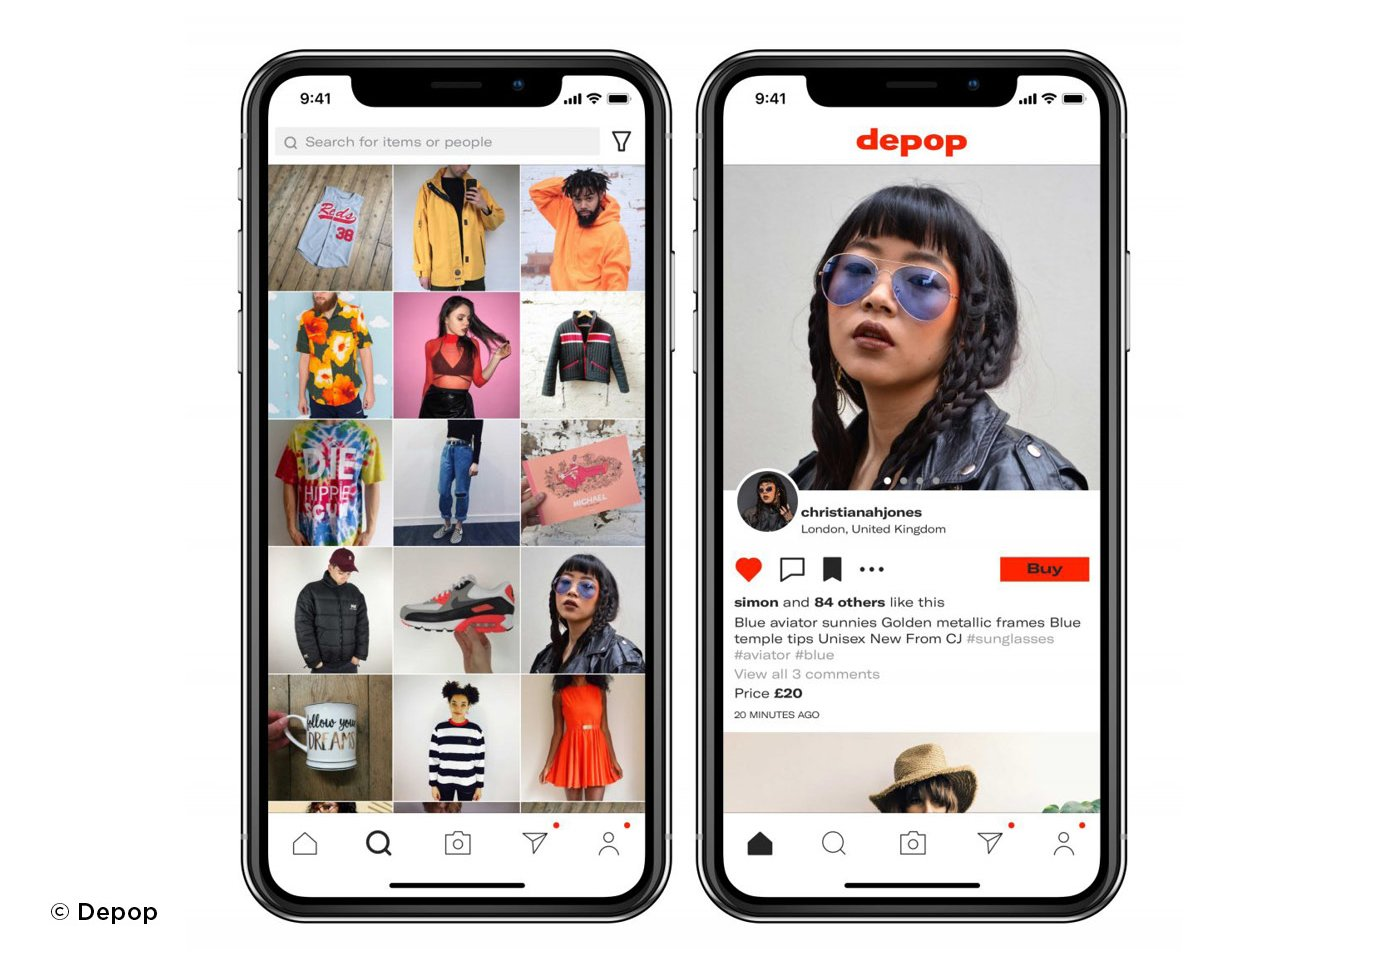 Depop challenge the backlash on bland e-commerce by offering exciting ways to shop online